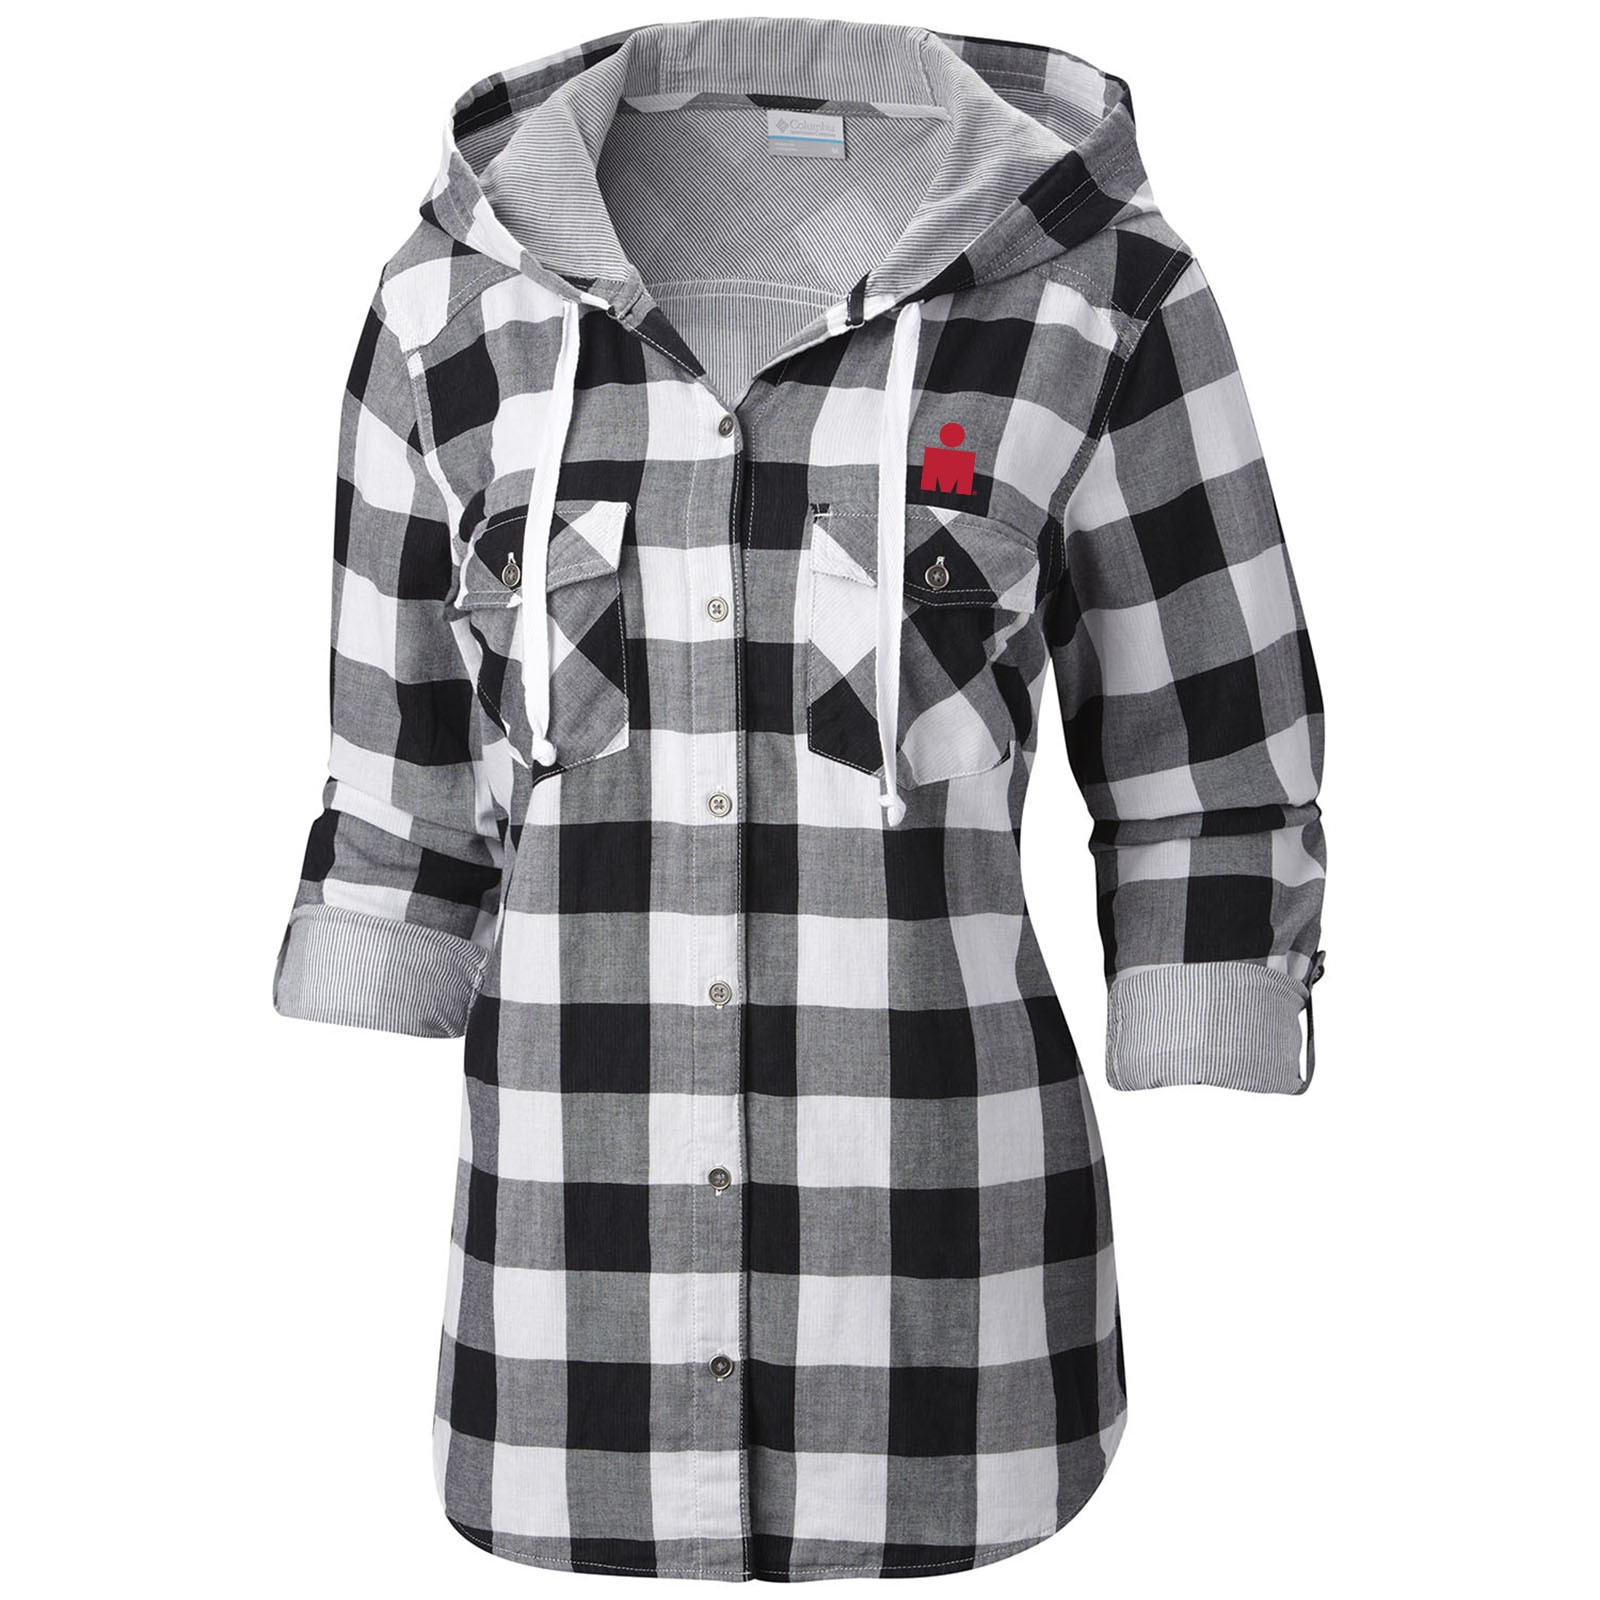 womens flannel shirt ironman columbia womenu0027s times two hooded flannel shirt mscxnml